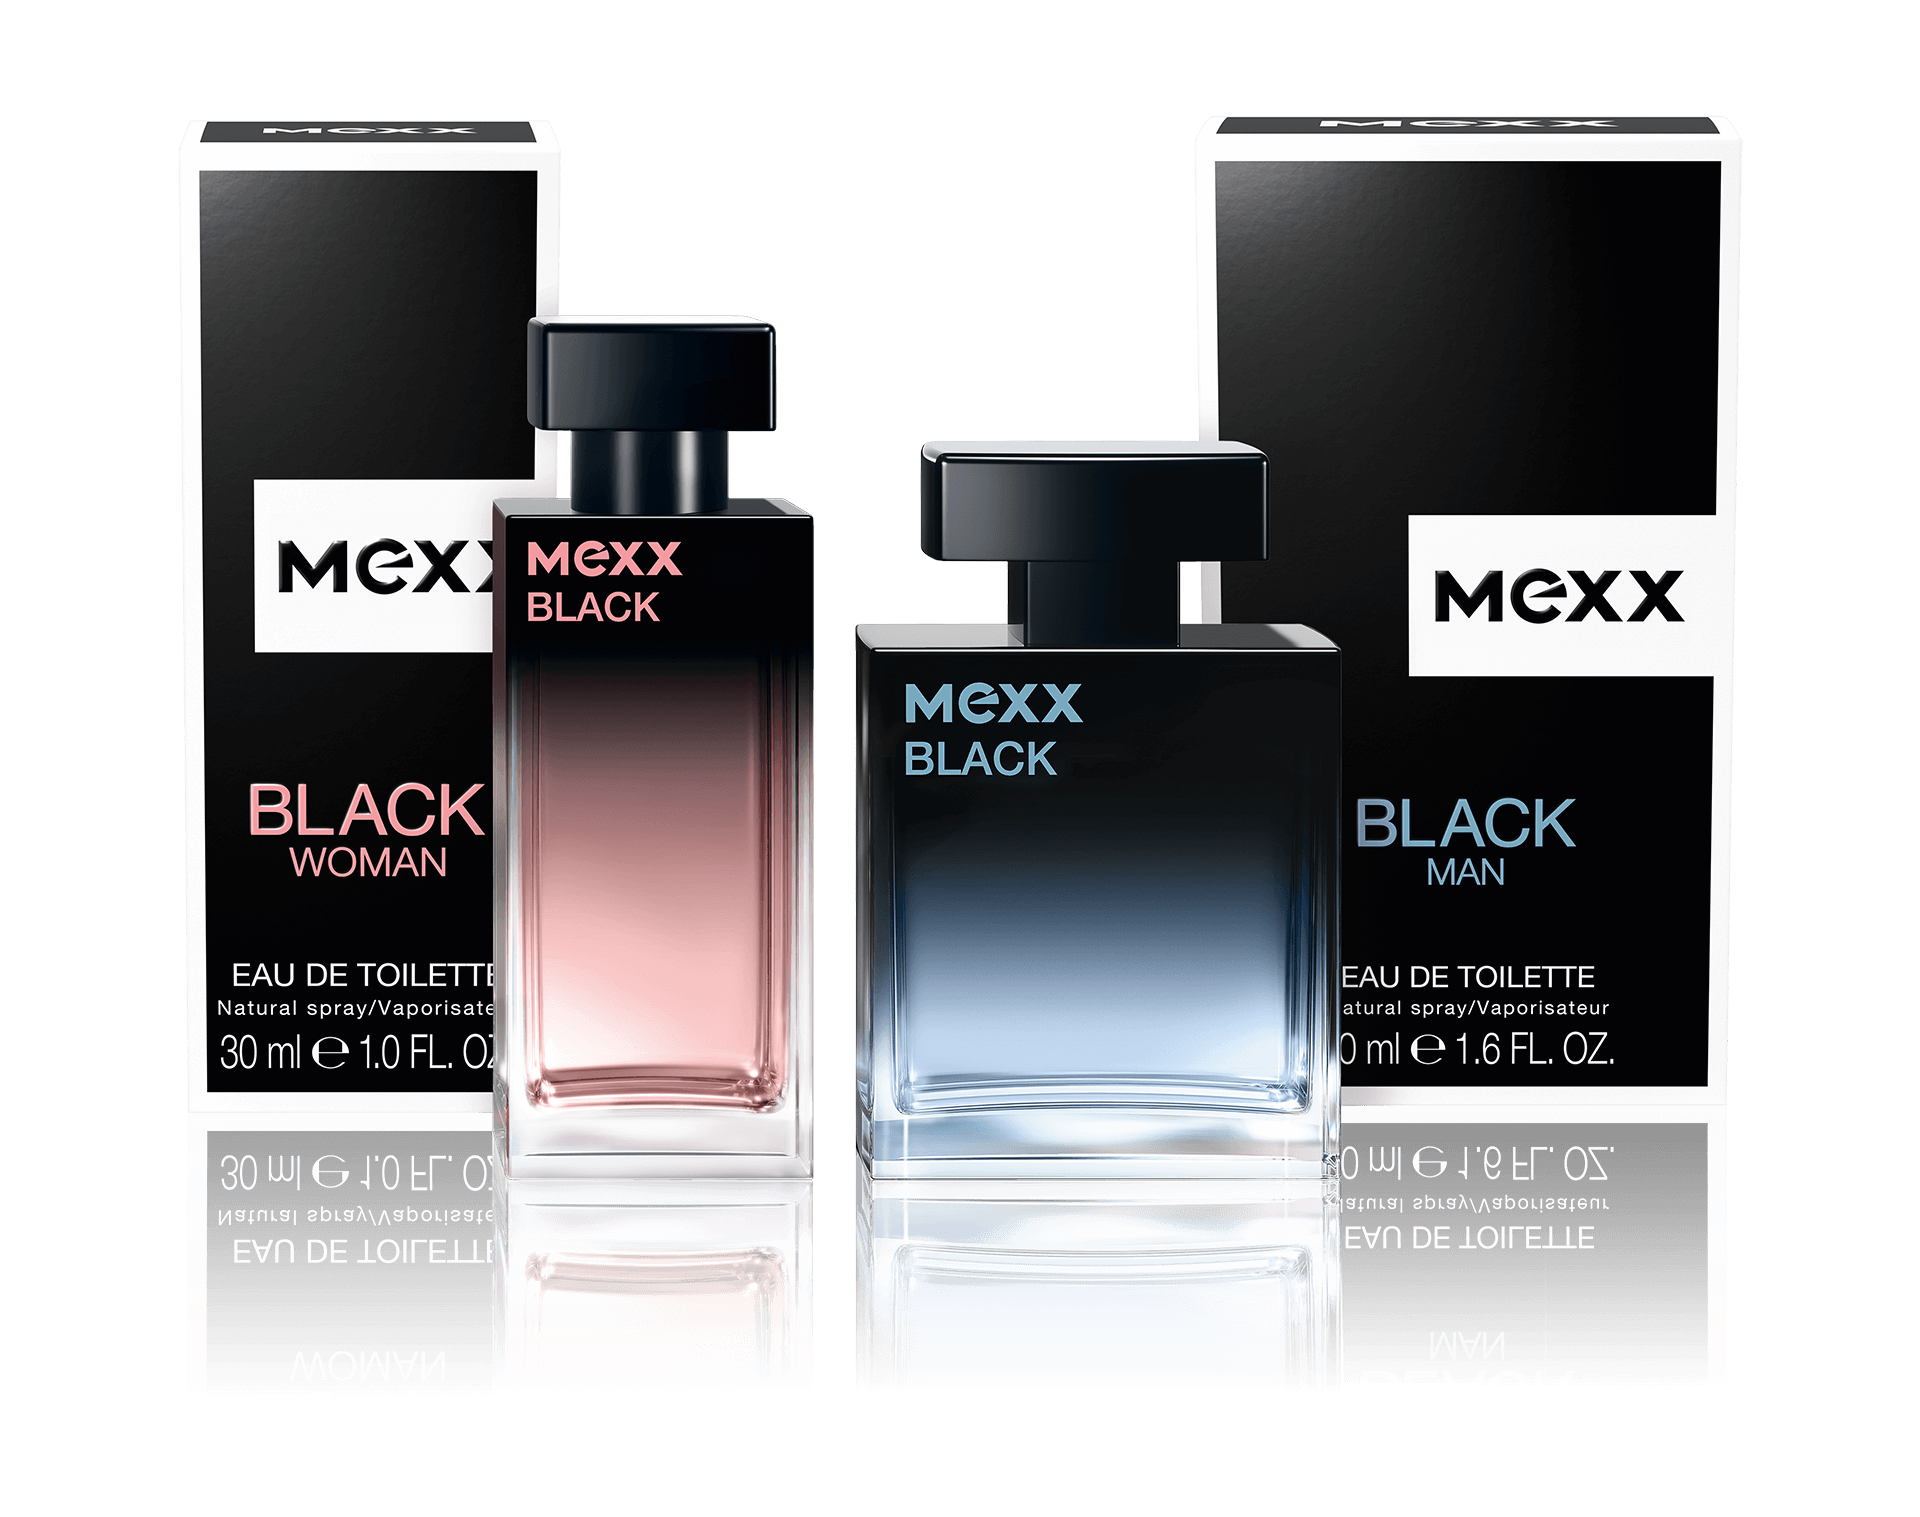 mexx black duo